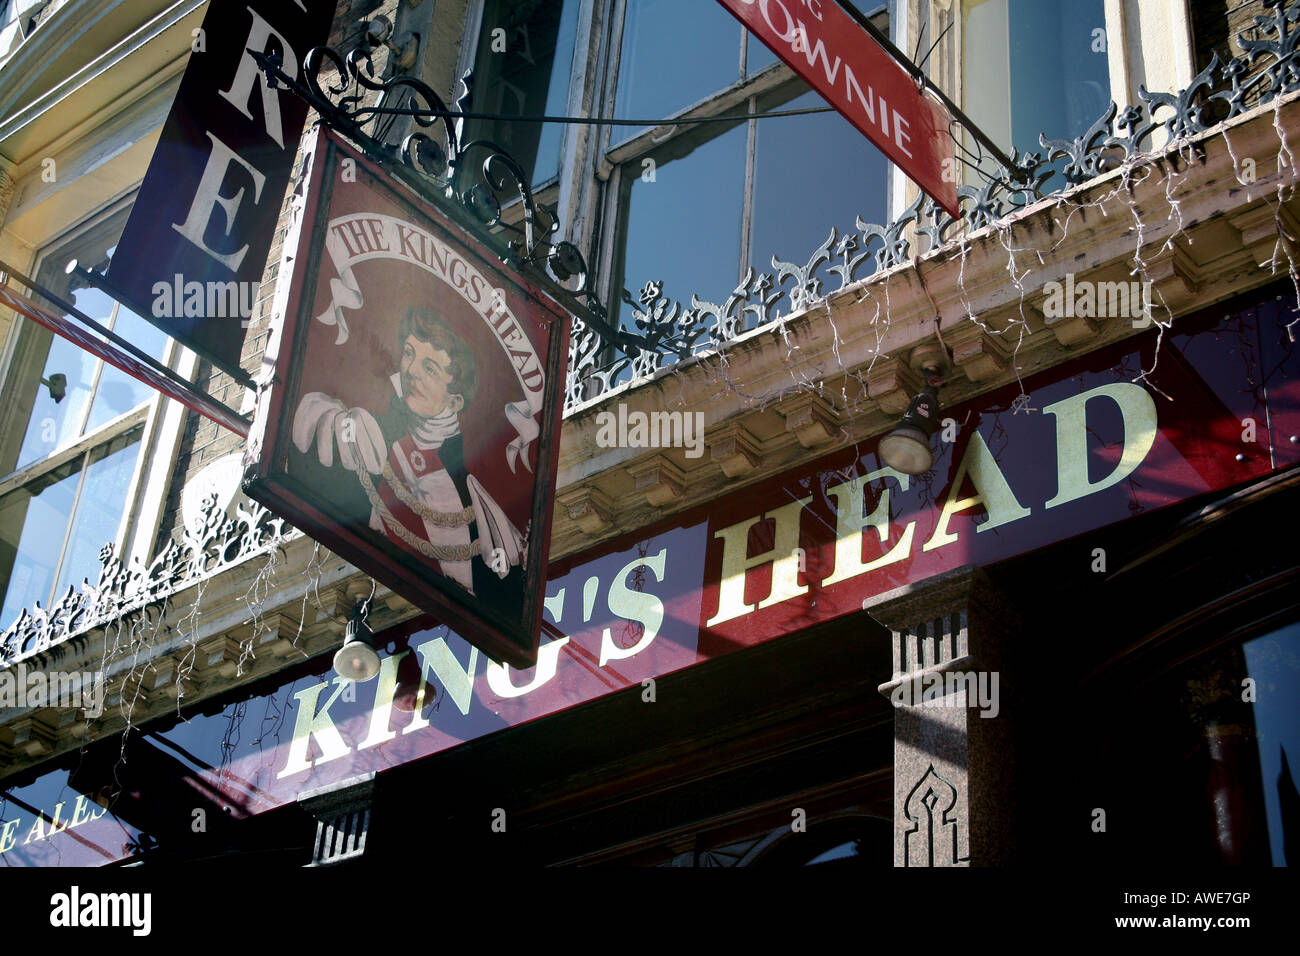 Kings Head theatre pub sign in Islington, London - Stock Image